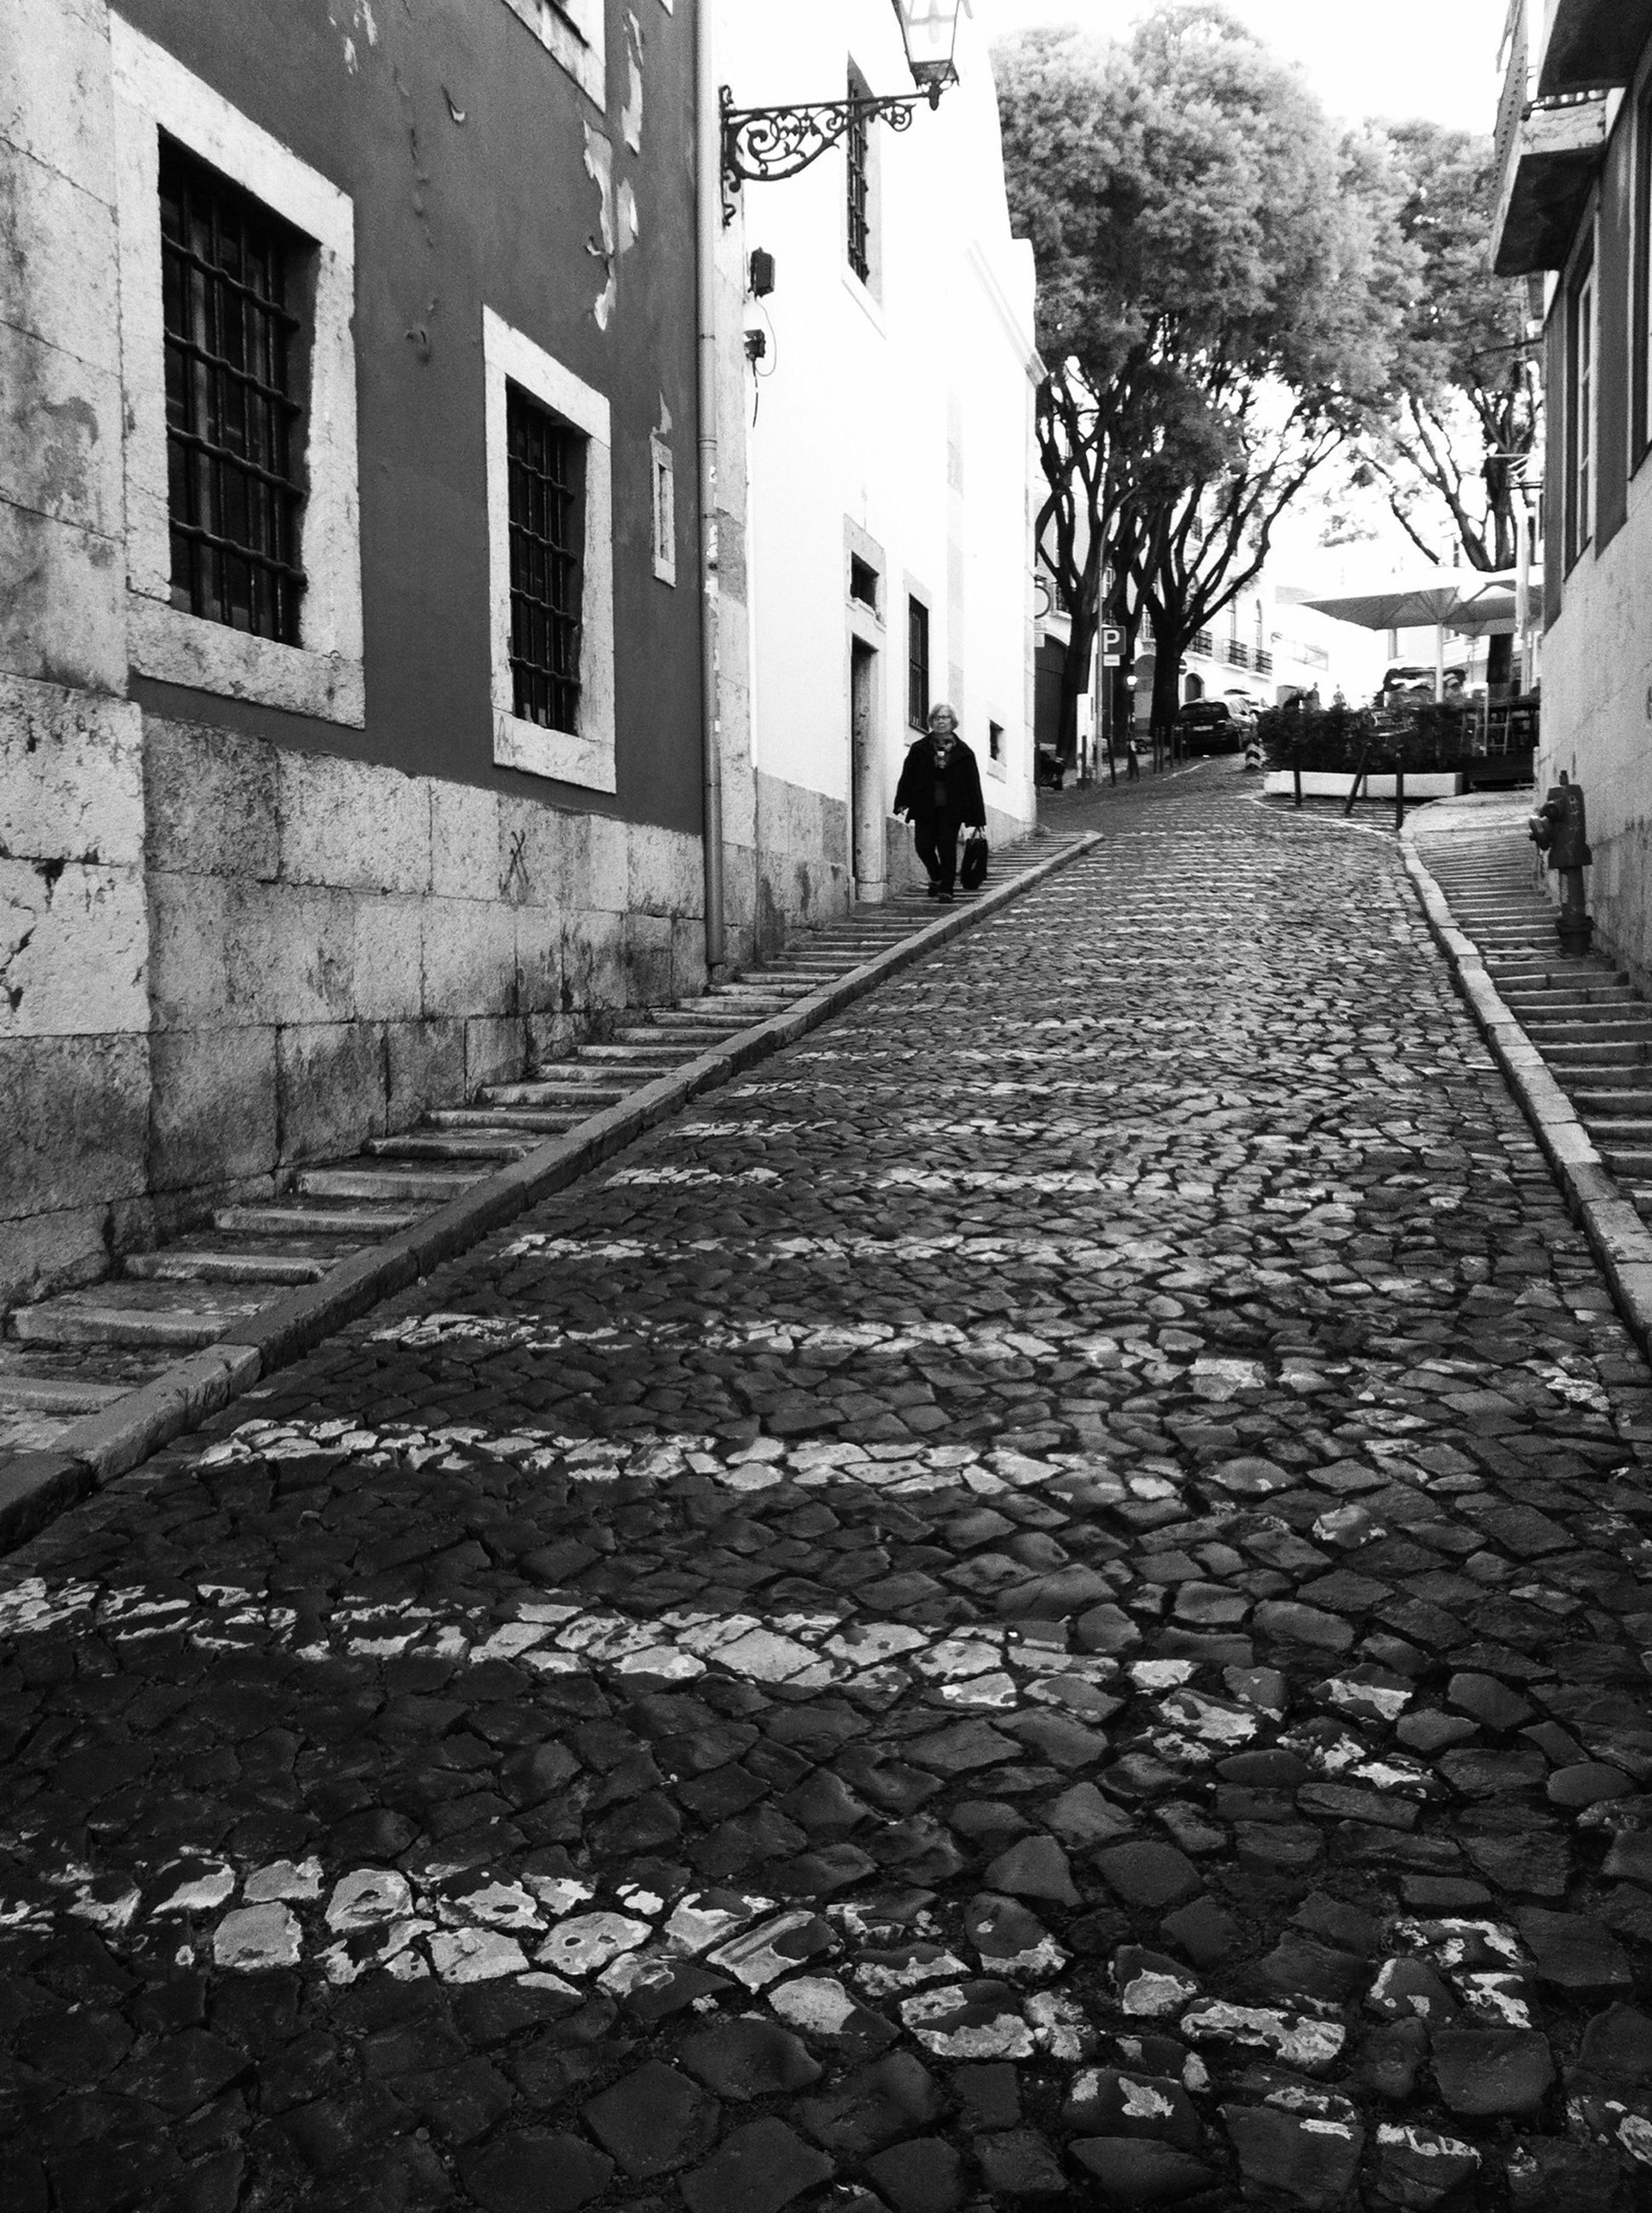 building exterior, architecture, built structure, the way forward, street, cobblestone, men, walking, city, transportation, lifestyles, diminishing perspective, day, residential structure, building, house, rear view, road